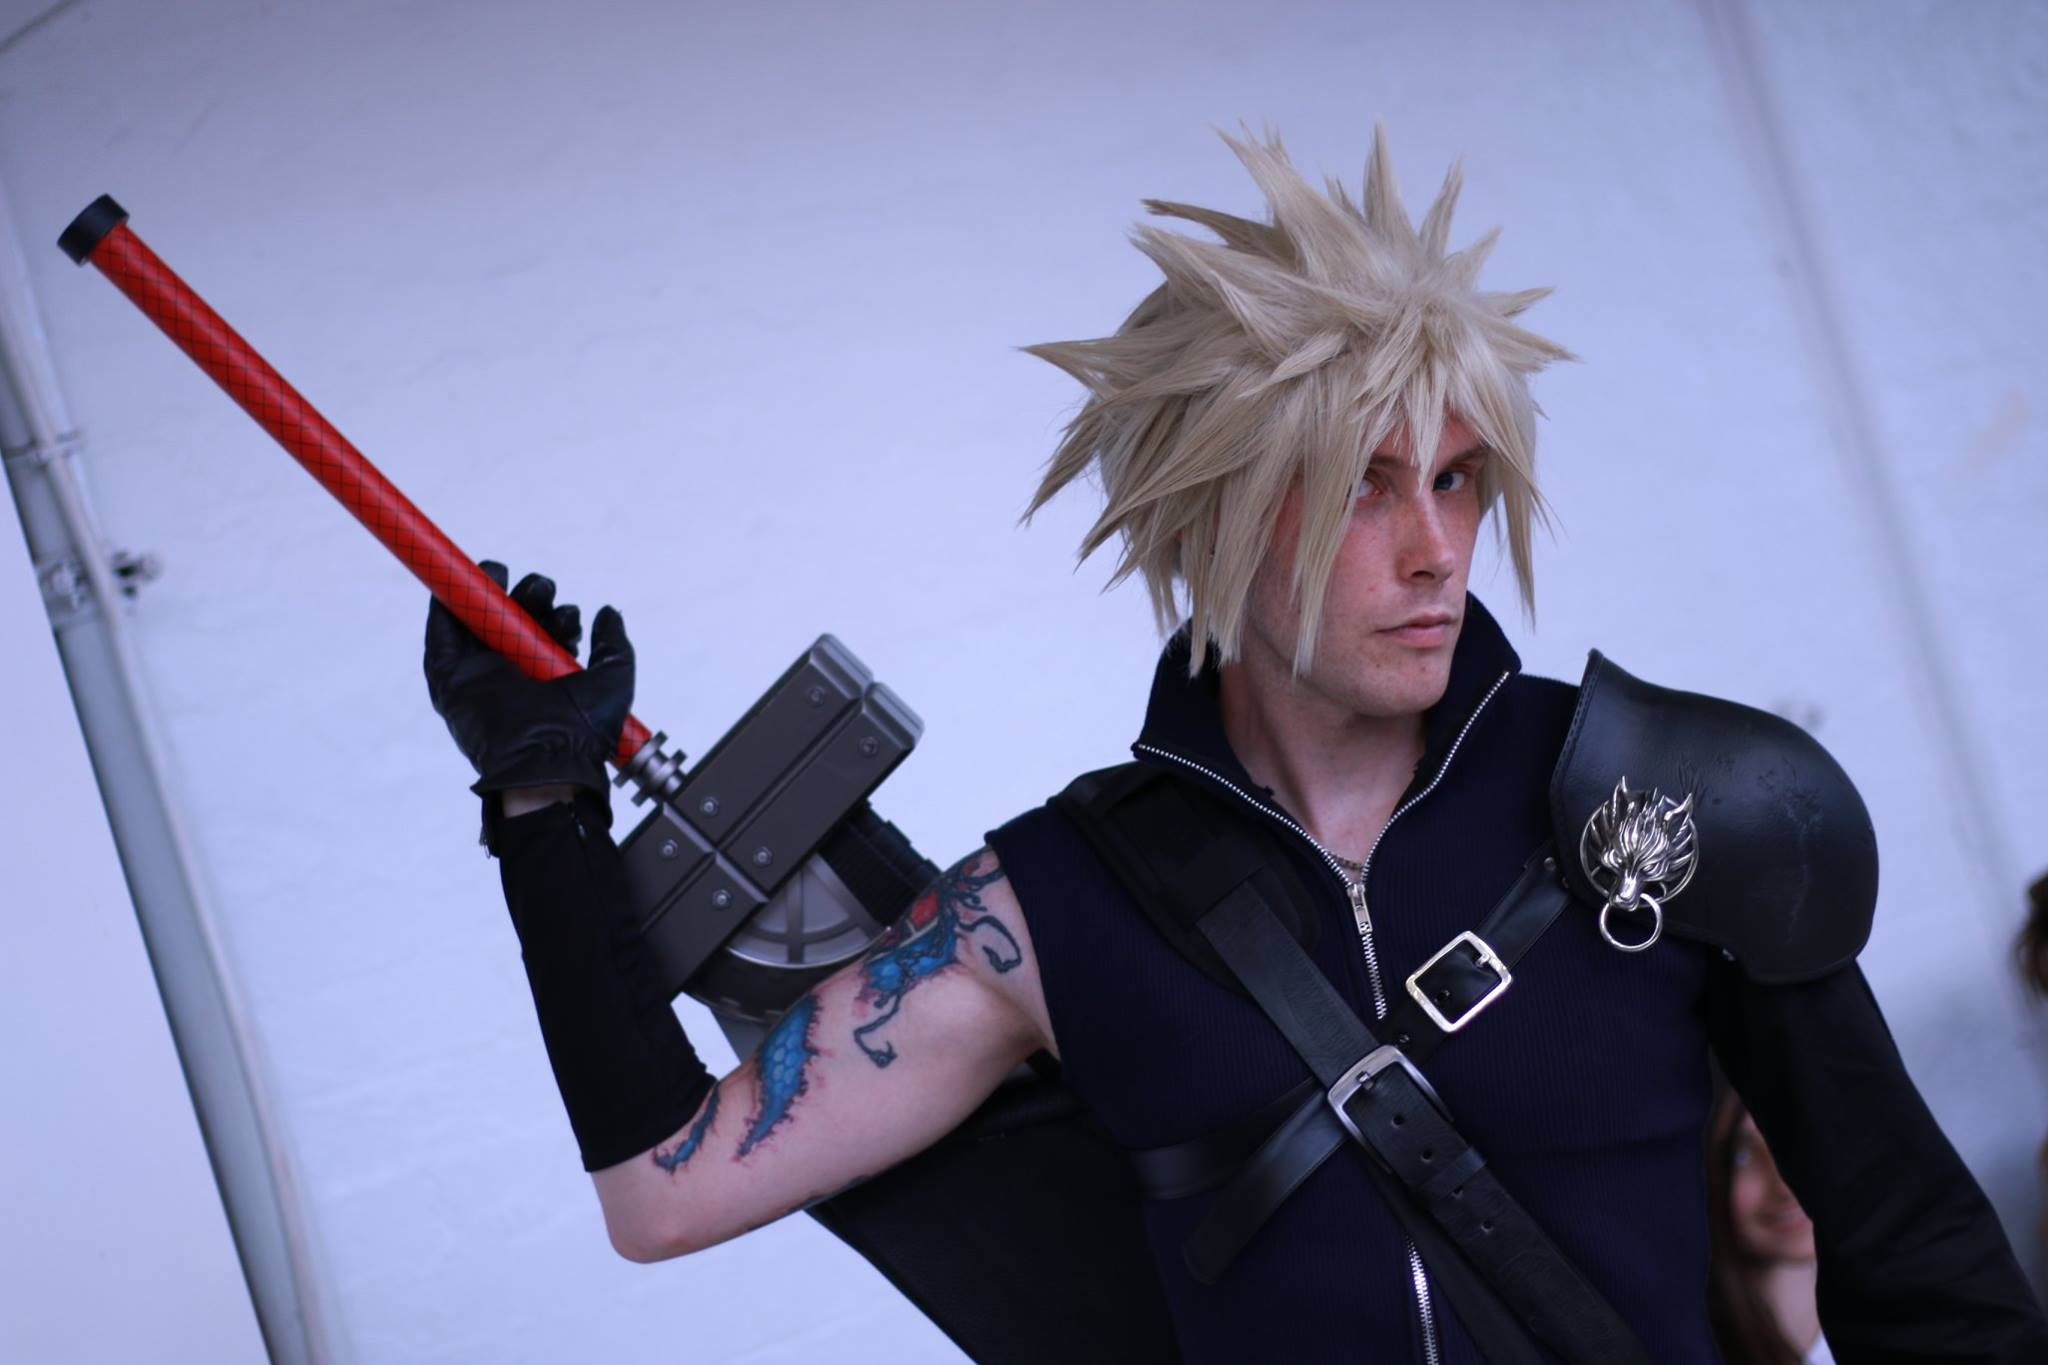 Advent Children Cloud Cosplay